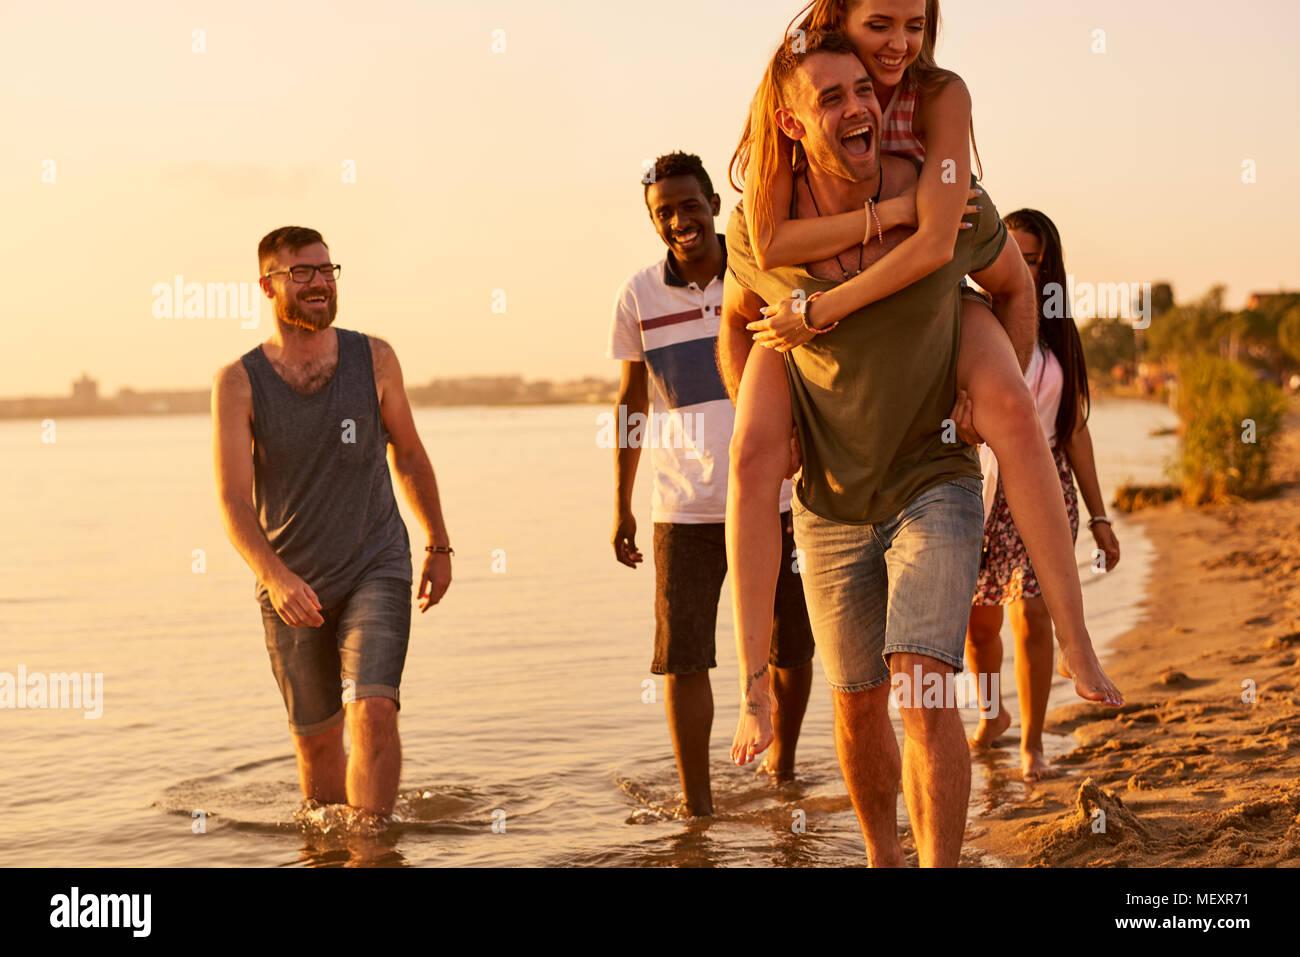 Cheerful friends walking together over coastline - Stock Image